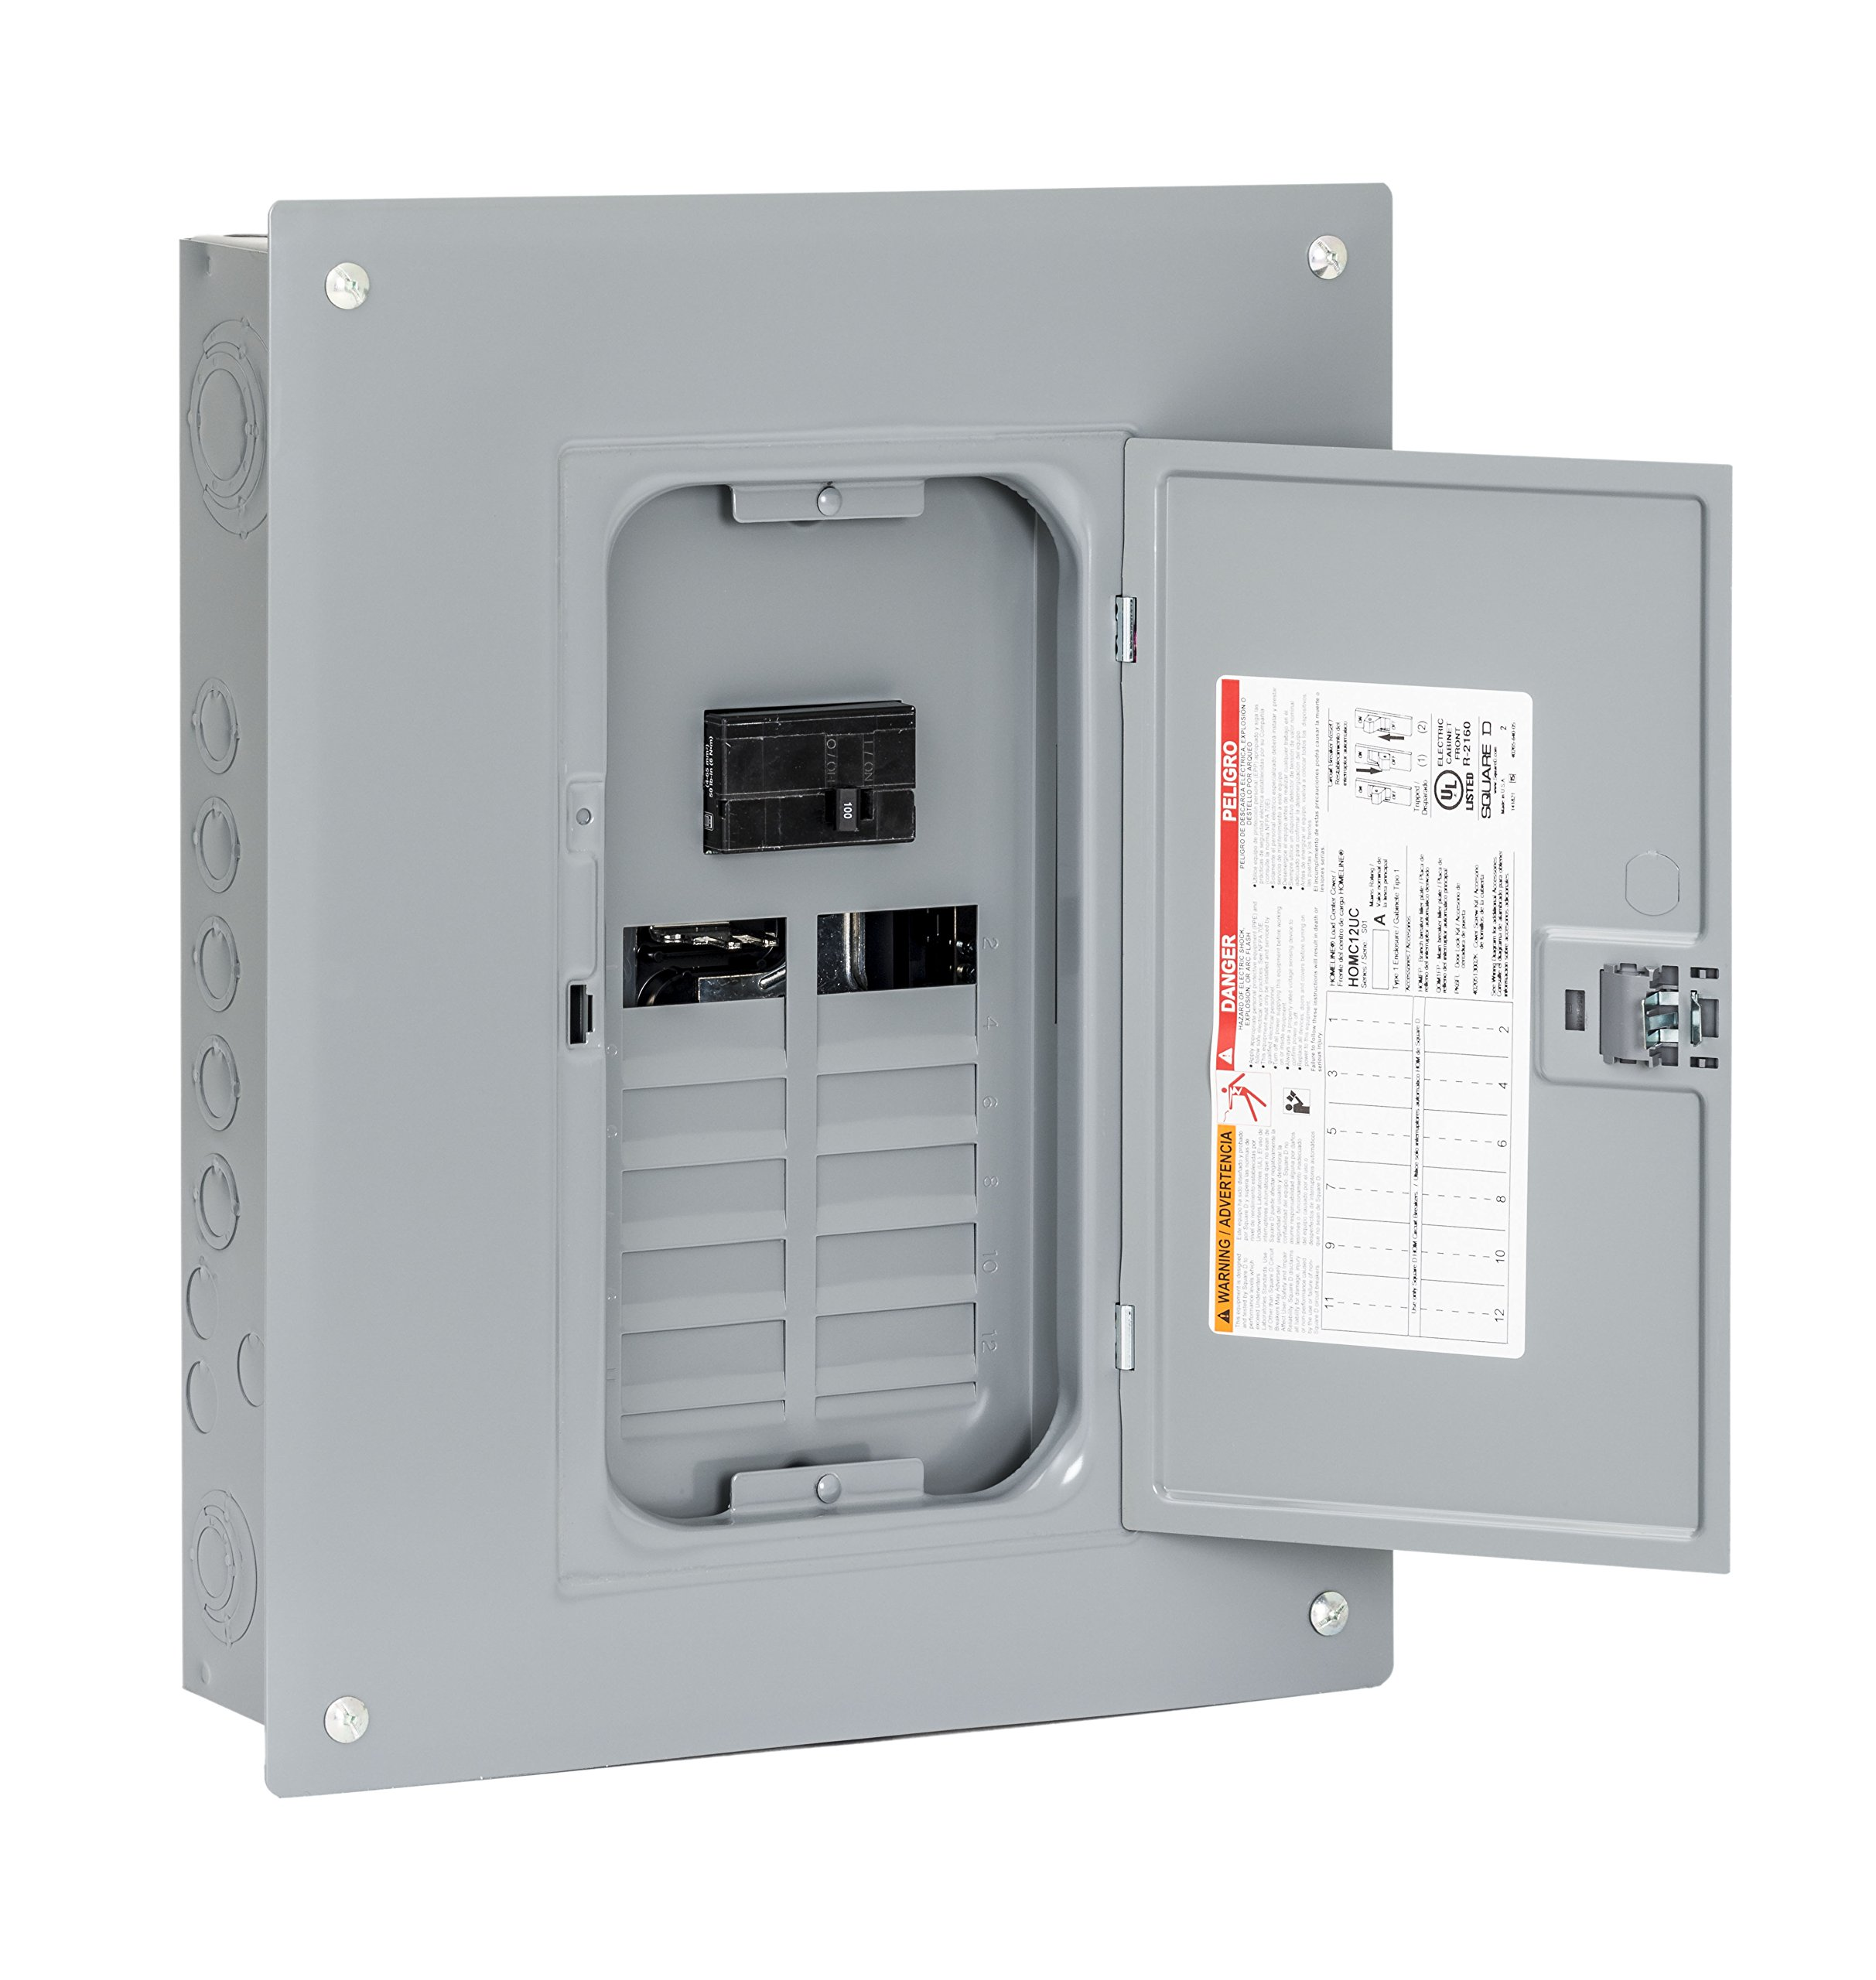 Square D by Schneider Electric HOM1224M100PC Homeline 100 Amp 12-Space 24-Circuit Indoor Main Breaker Load Center with Cover (Plug-on Neutral Ready),